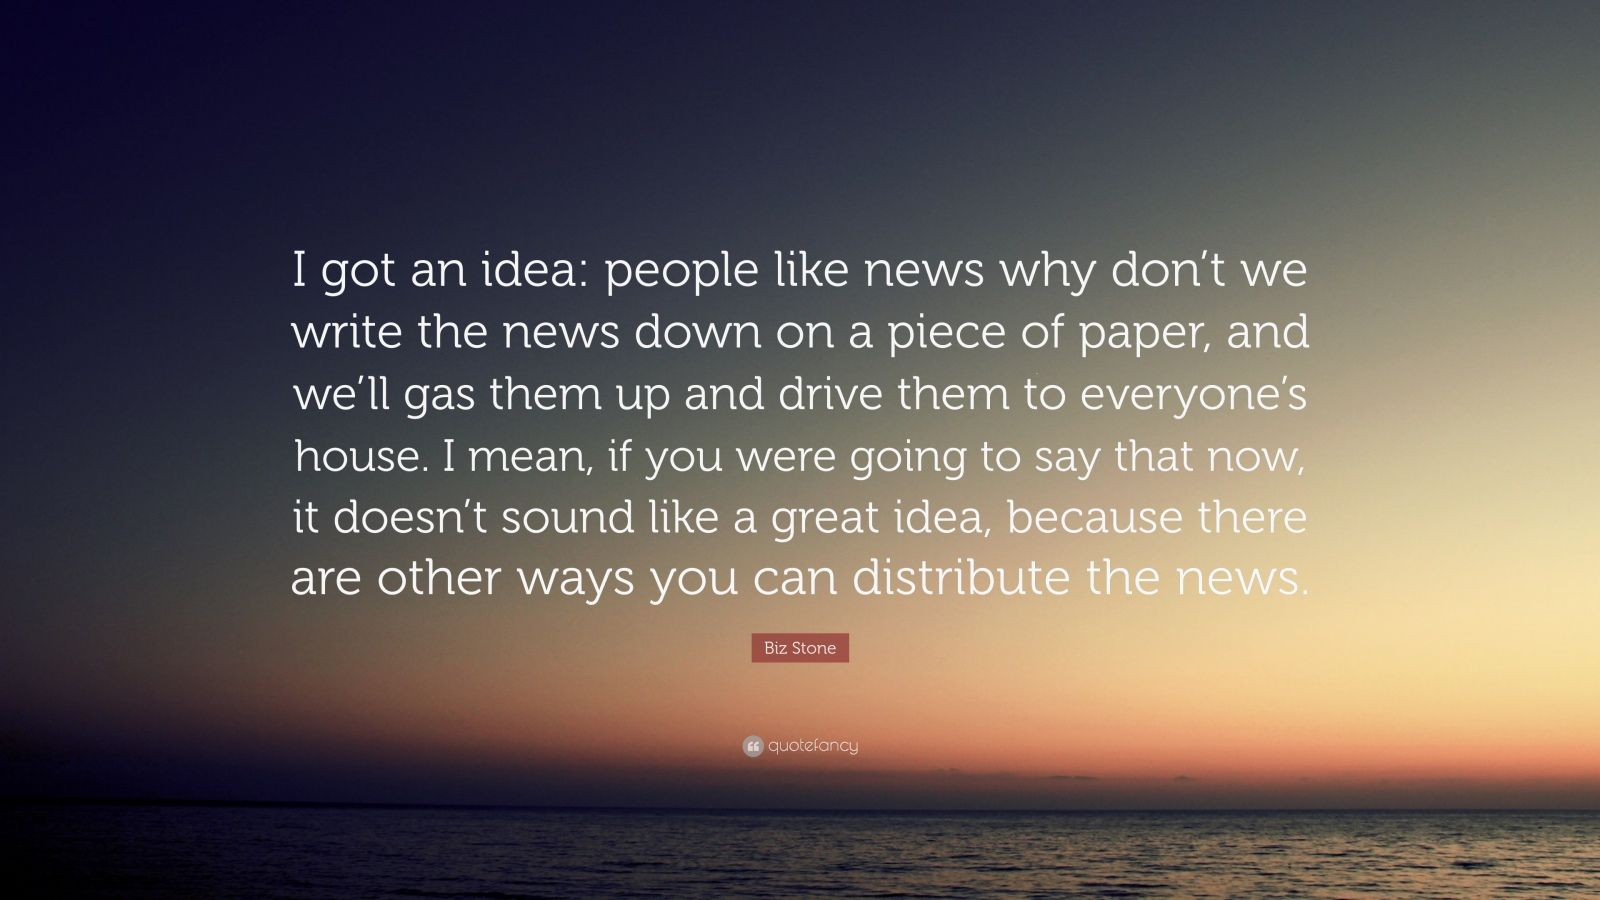 """Biz Stone Quote: """"I got an idea: people like news why don't we write the news down on a piece of paper, and we'll gas them up and drive them to everyone's house. I mean, if you were going to say that now, it doesn't sound like a great idea, because there are other ways you can distribute the news."""""""